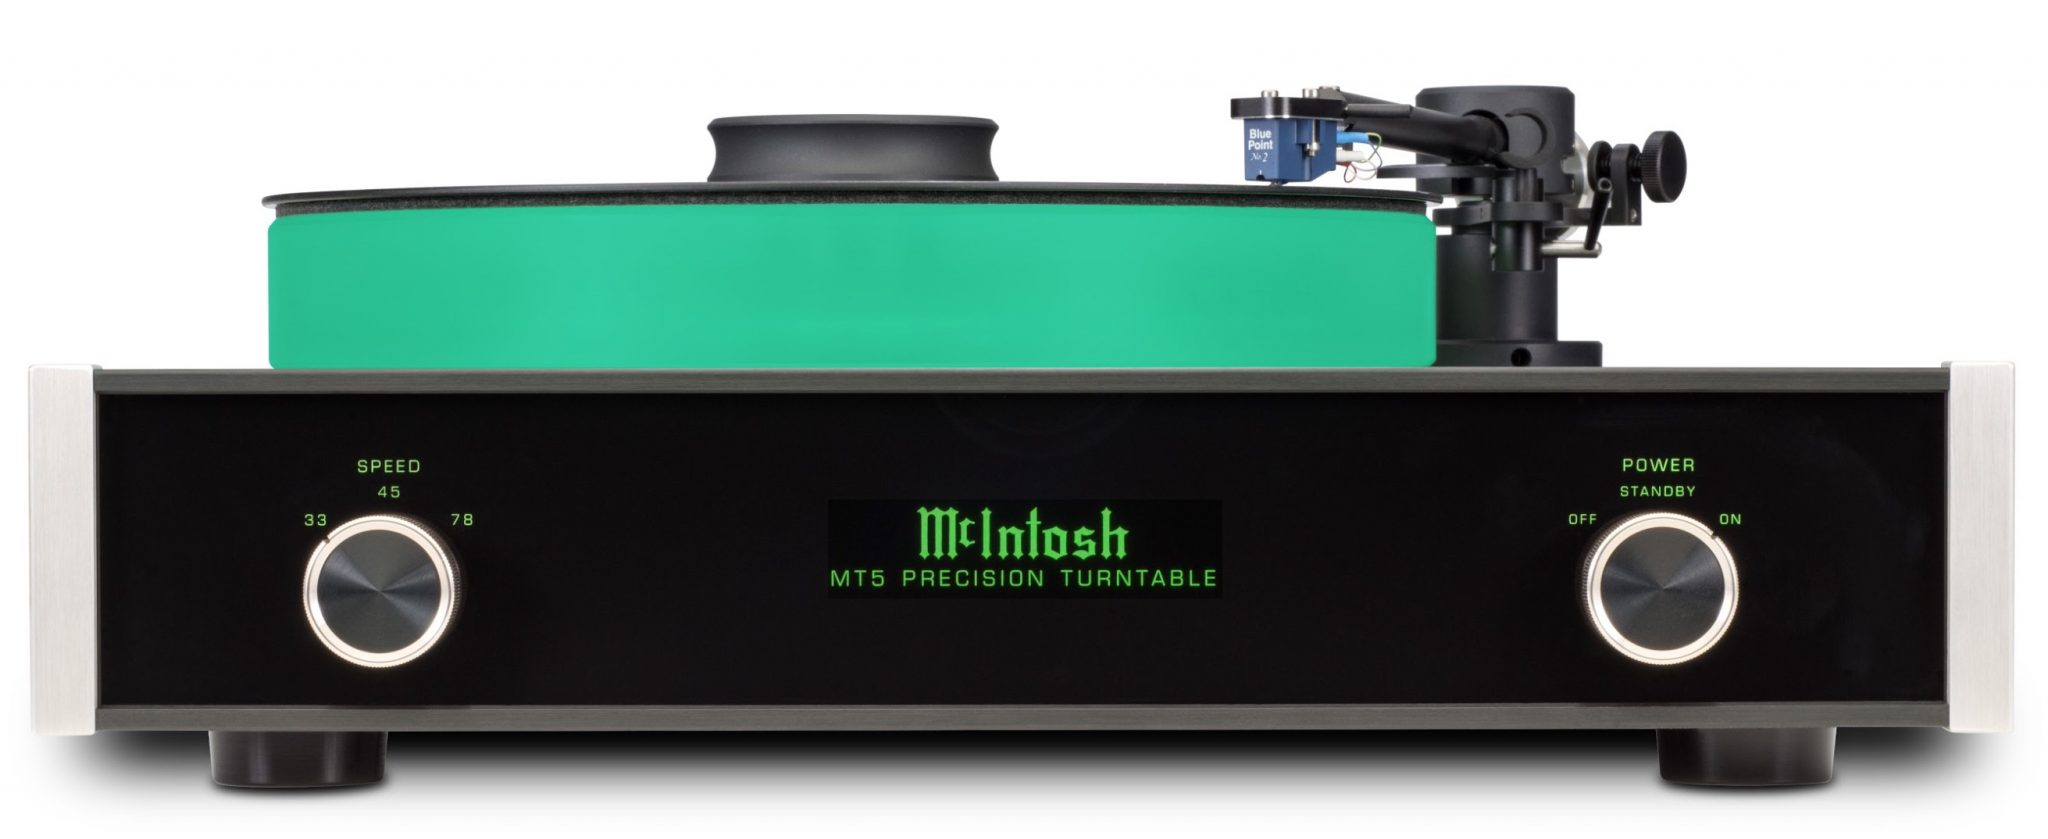 McIntosh MT5 Turntable: Turning Grooves Green